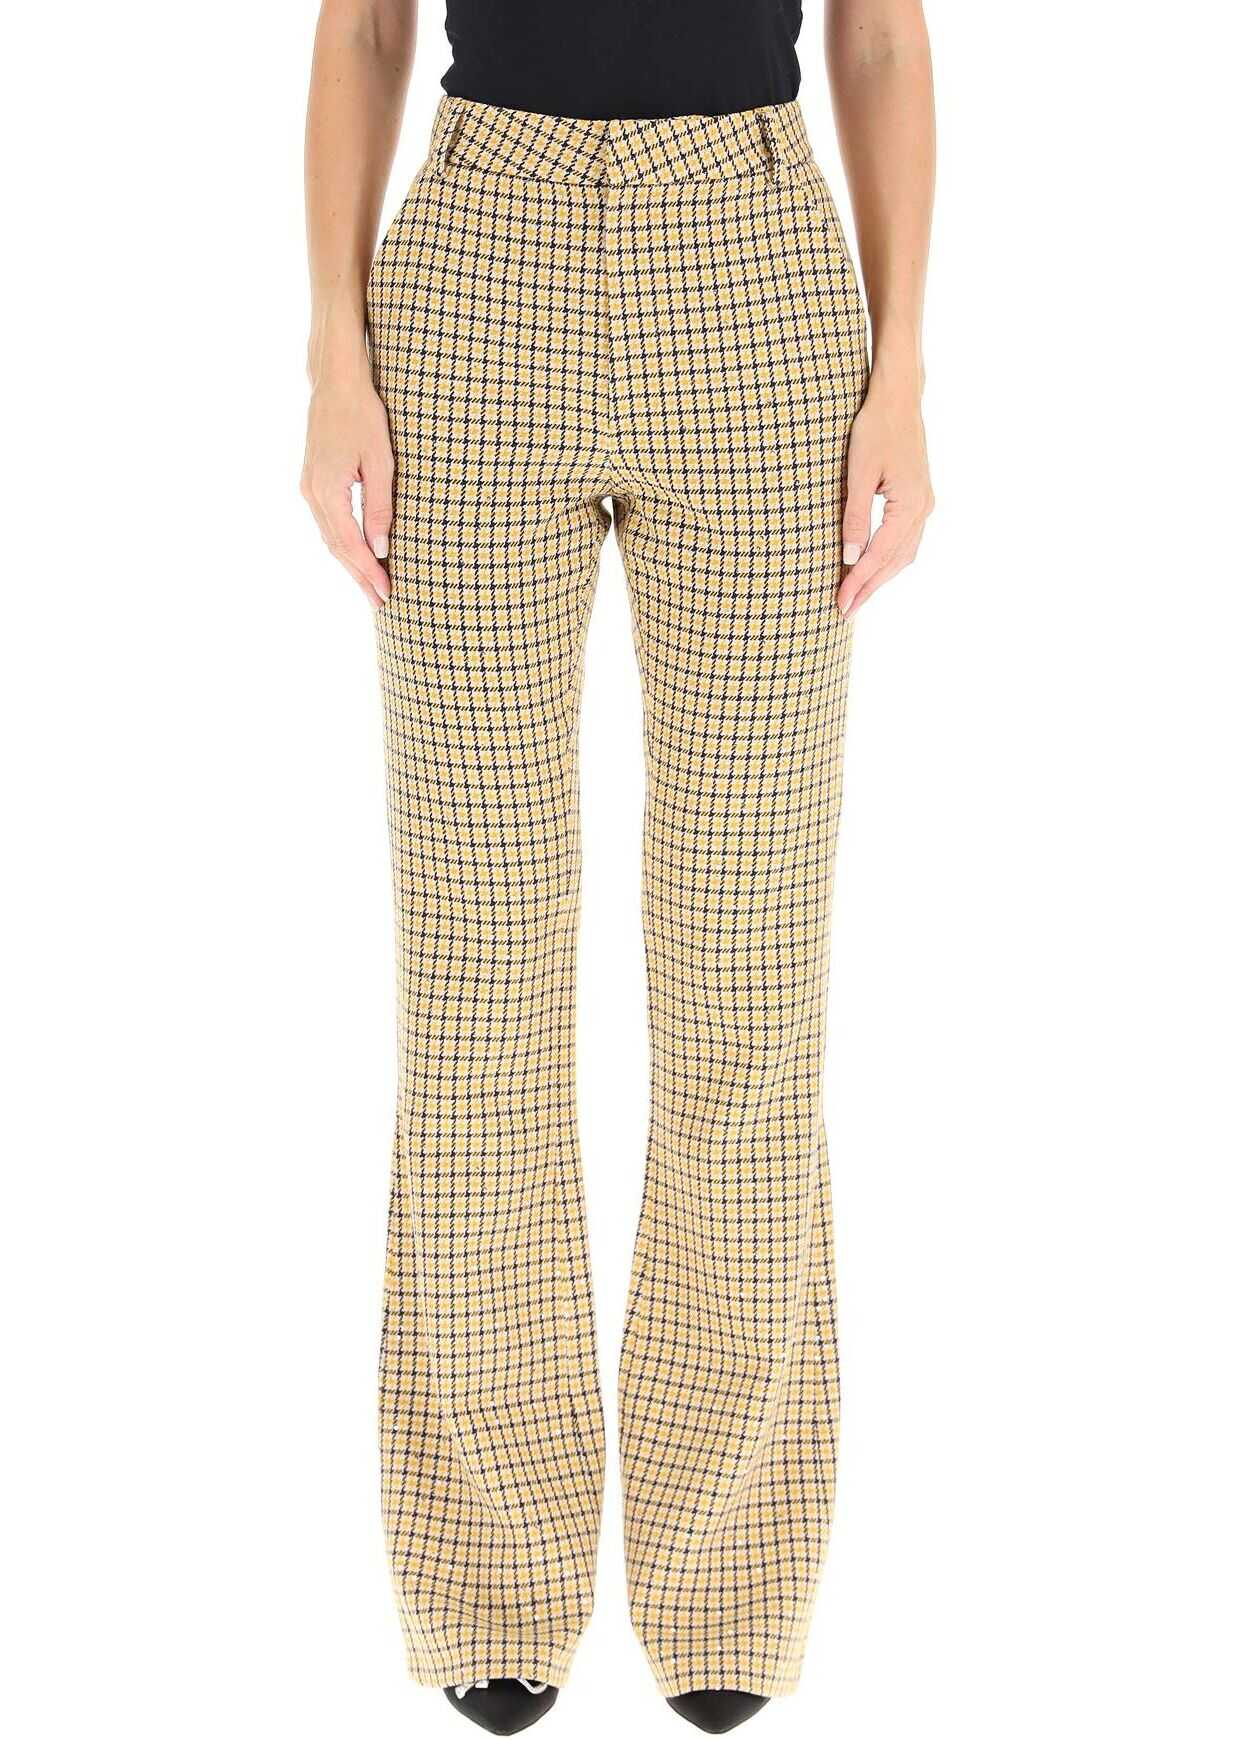 Alessandra Rich Sequined Bootcut Trousers FAB2655 F3315 YELLOW image0